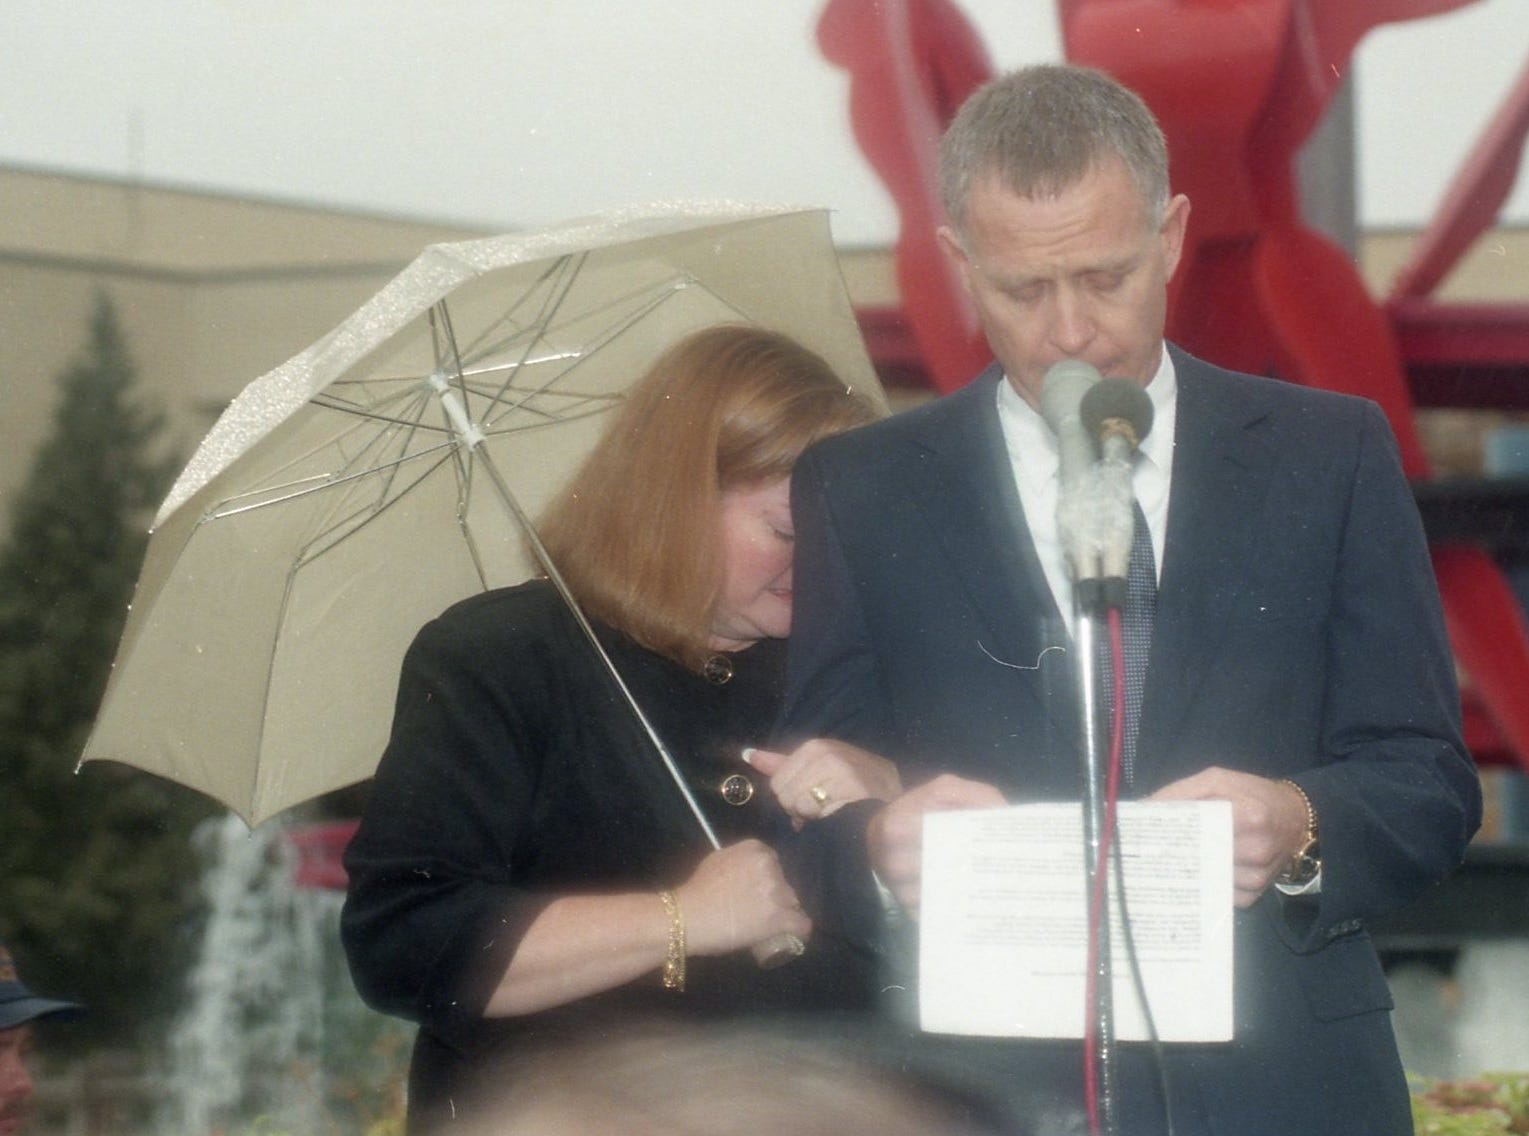 Dennis Shepard, with his wife Judy, speaks outside Casper City Hall on October 16, 1998, the day of their son Matthew's funeral.